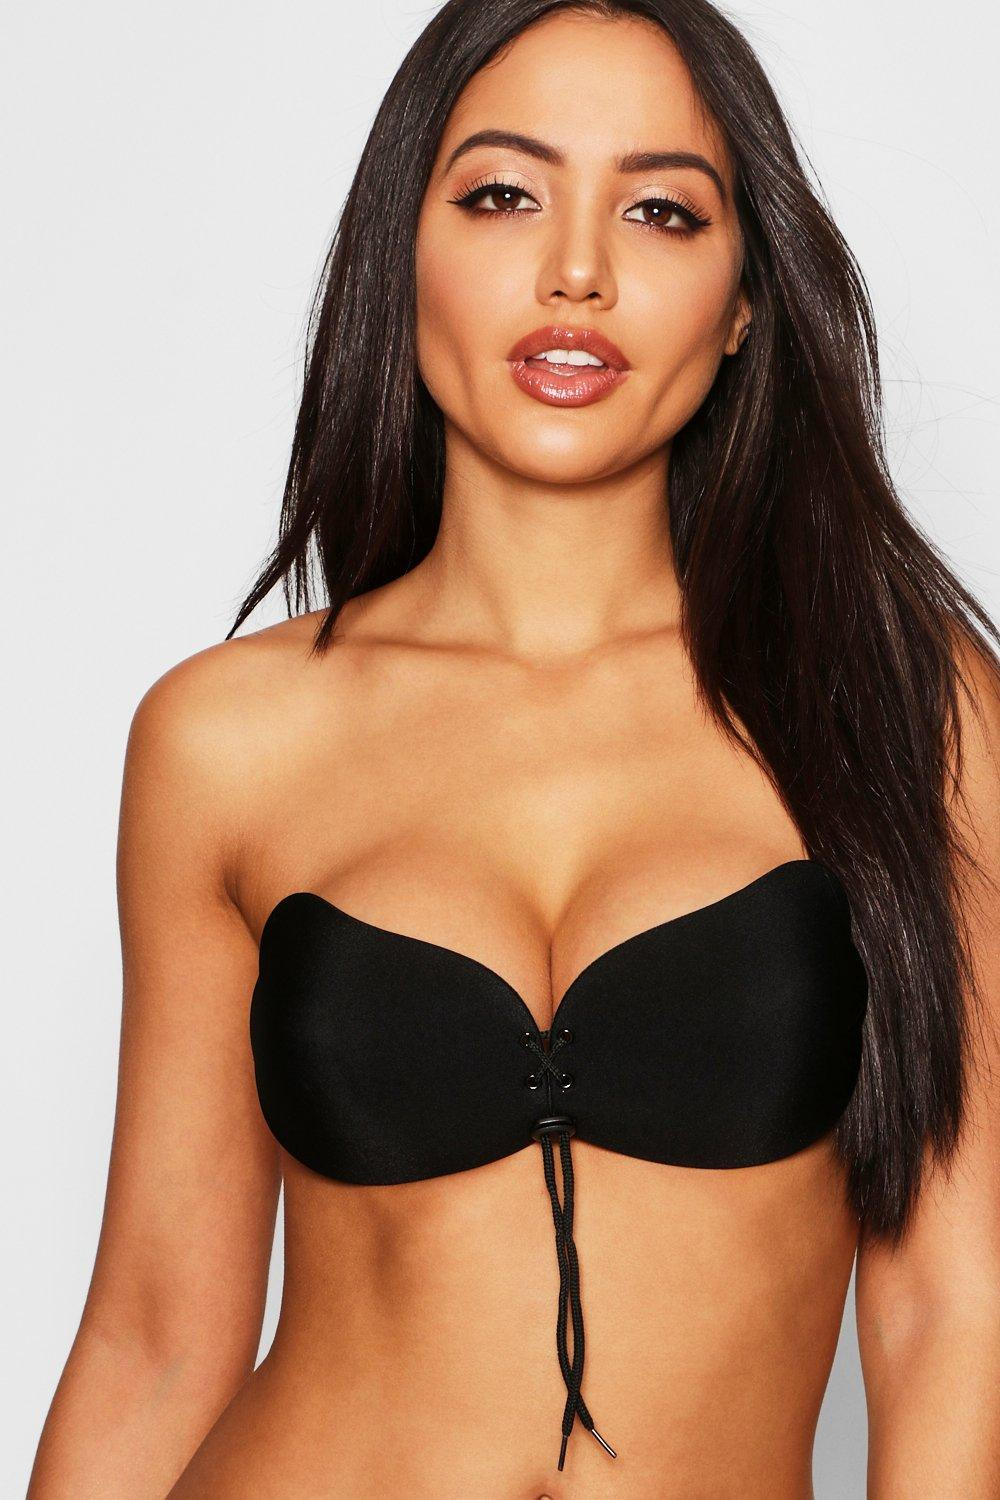 b203950ff96 ... Lace Up Bra 2 Pack. Hover to zoom